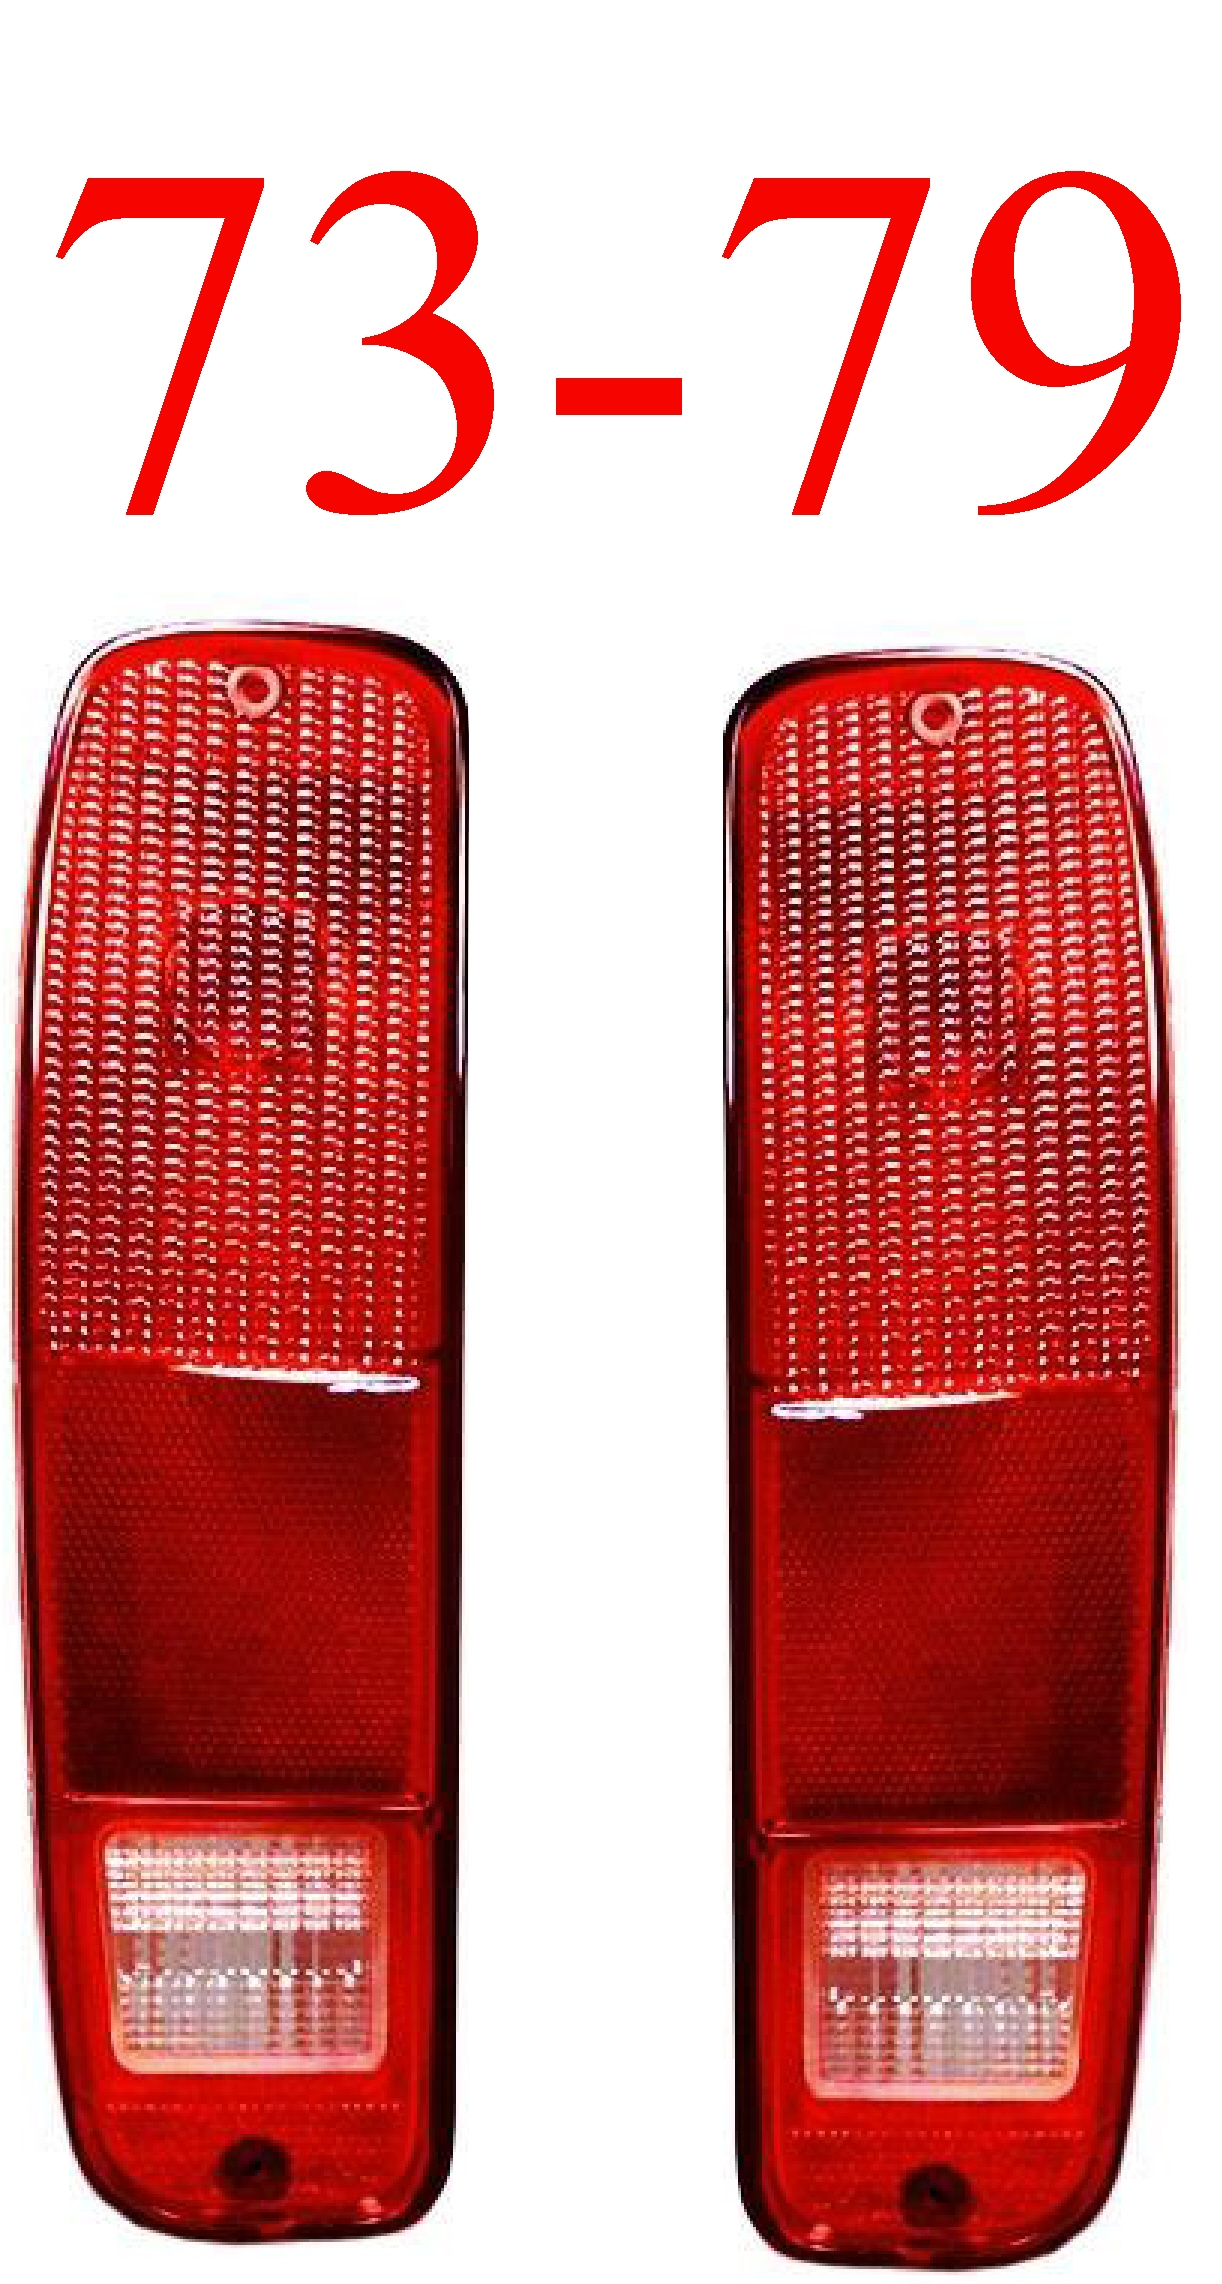 73 77 ford truck 78 79 bronco rear tail light harness. Black Bedroom Furniture Sets. Home Design Ideas